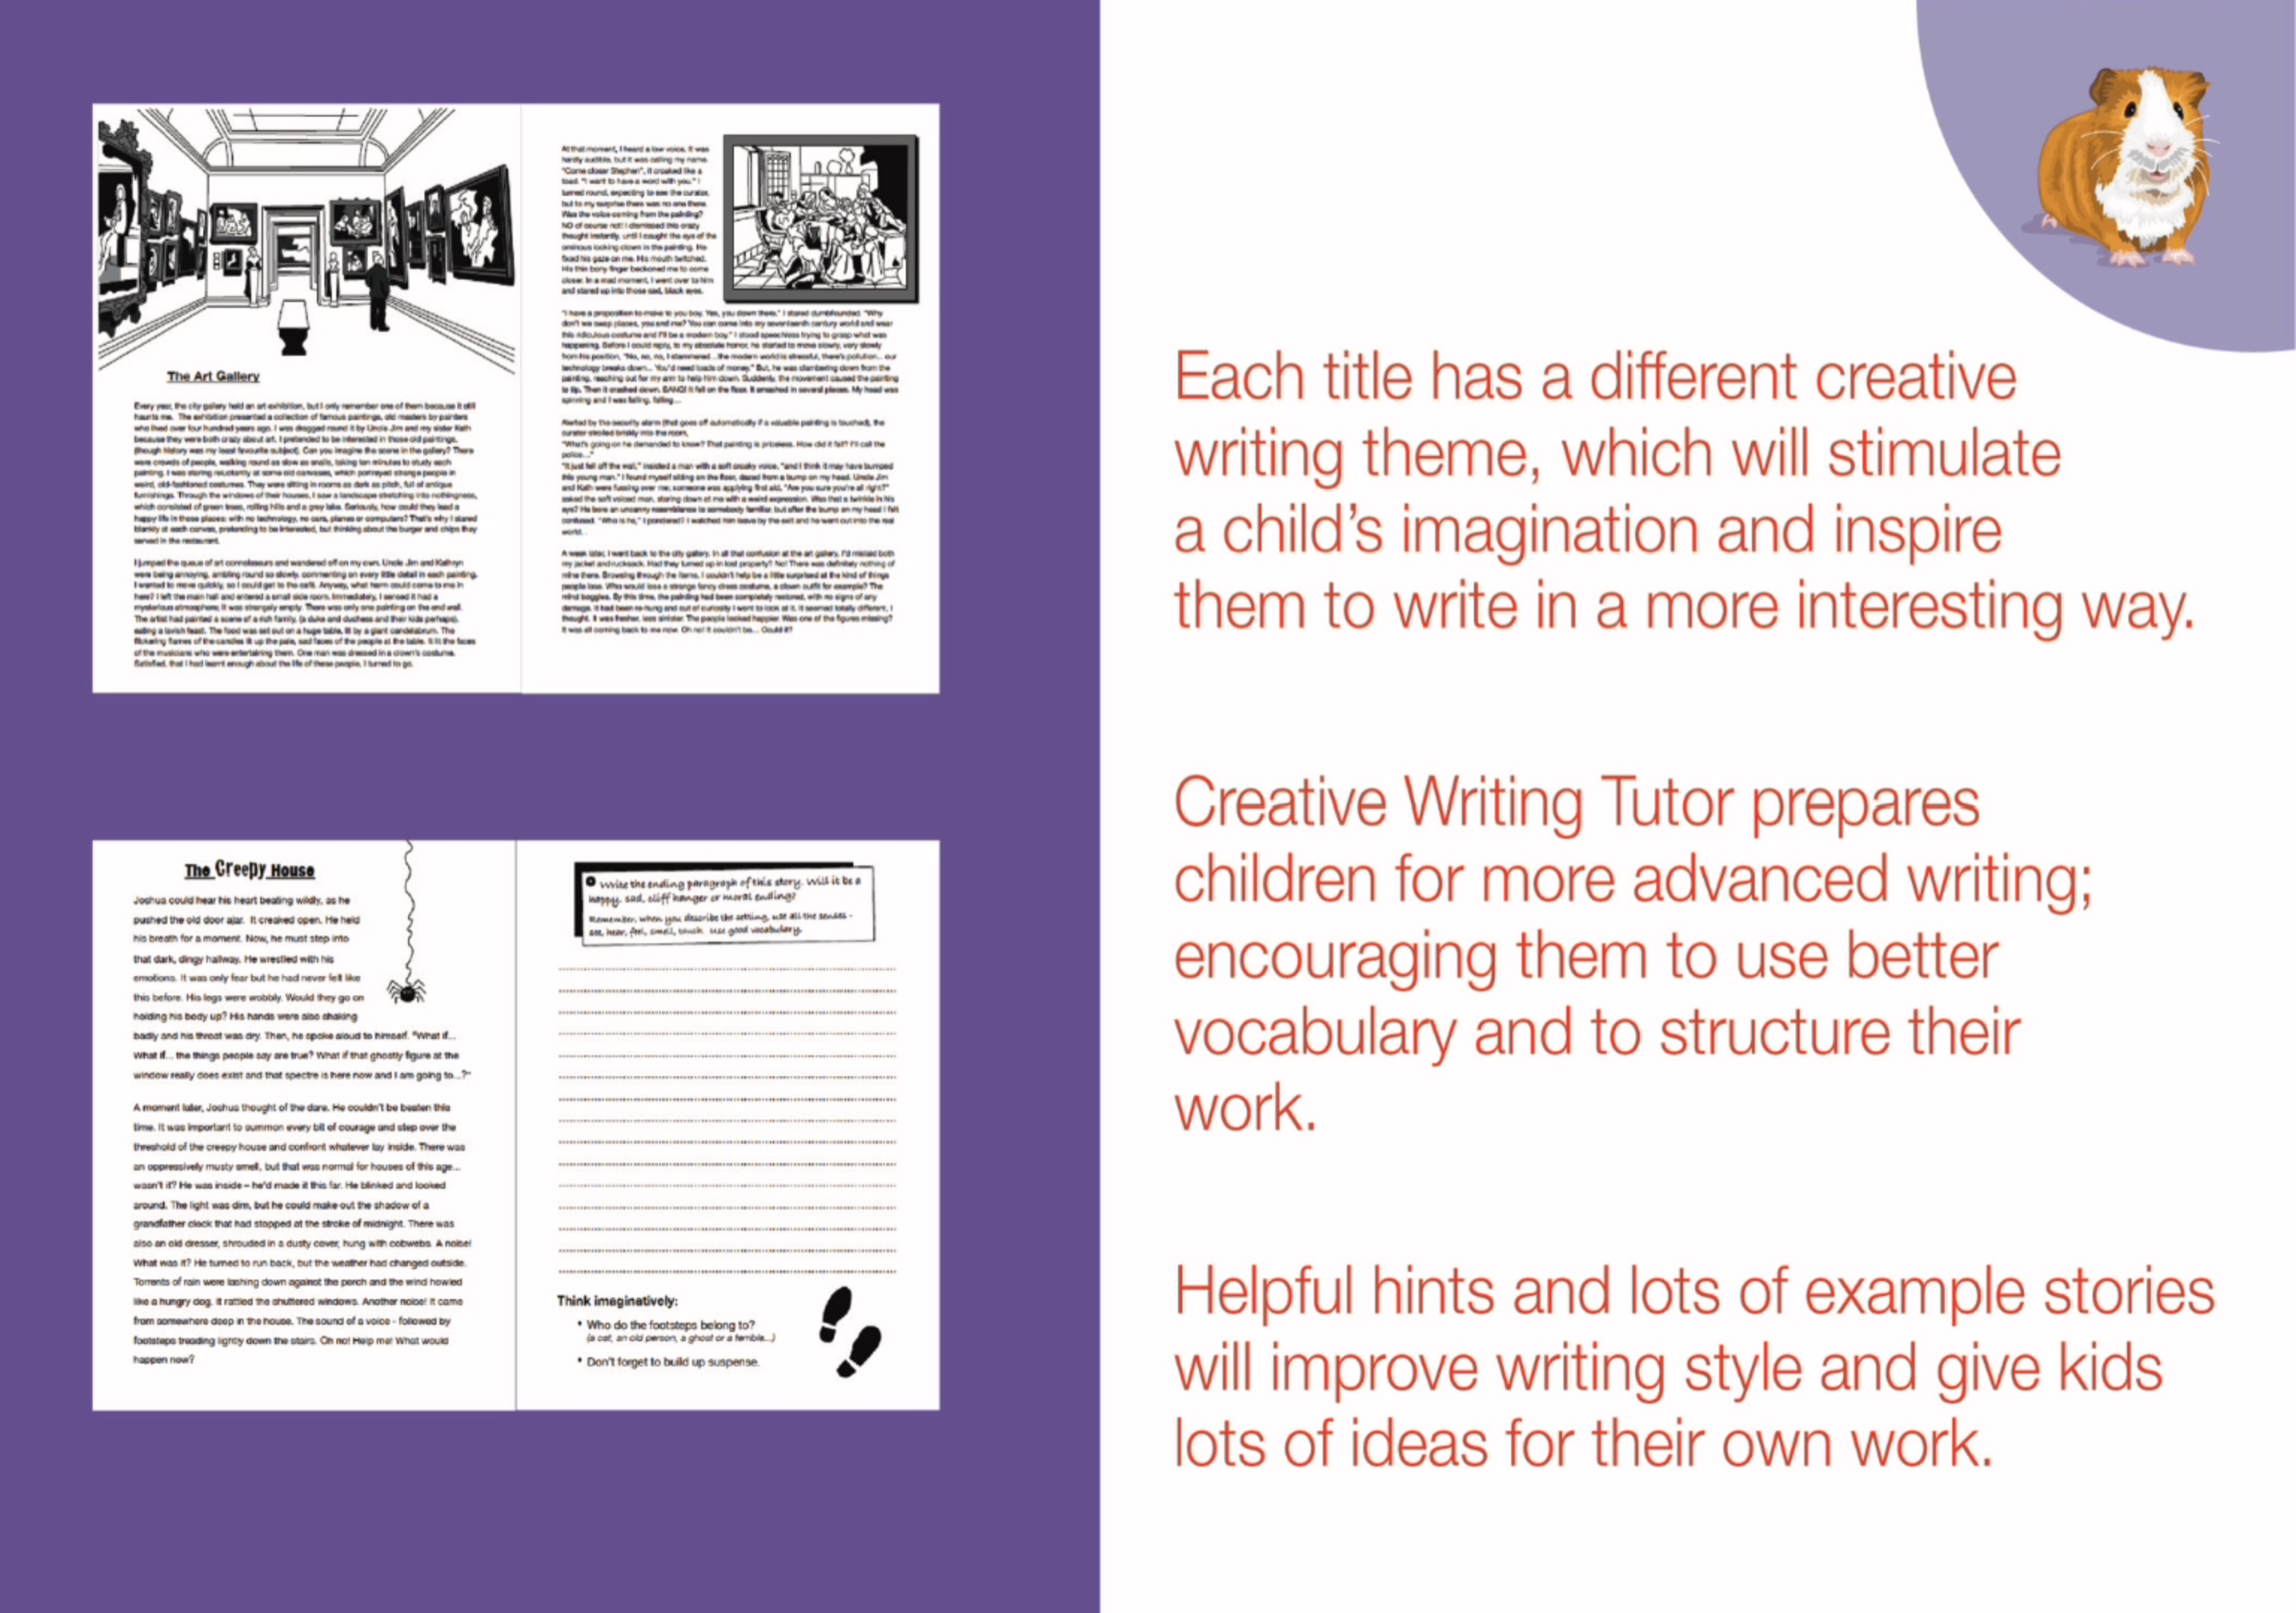 The Space Age Bag: Brush Up On Your Writing Skills (Creative Writing Tutor) (9-13) Print Version